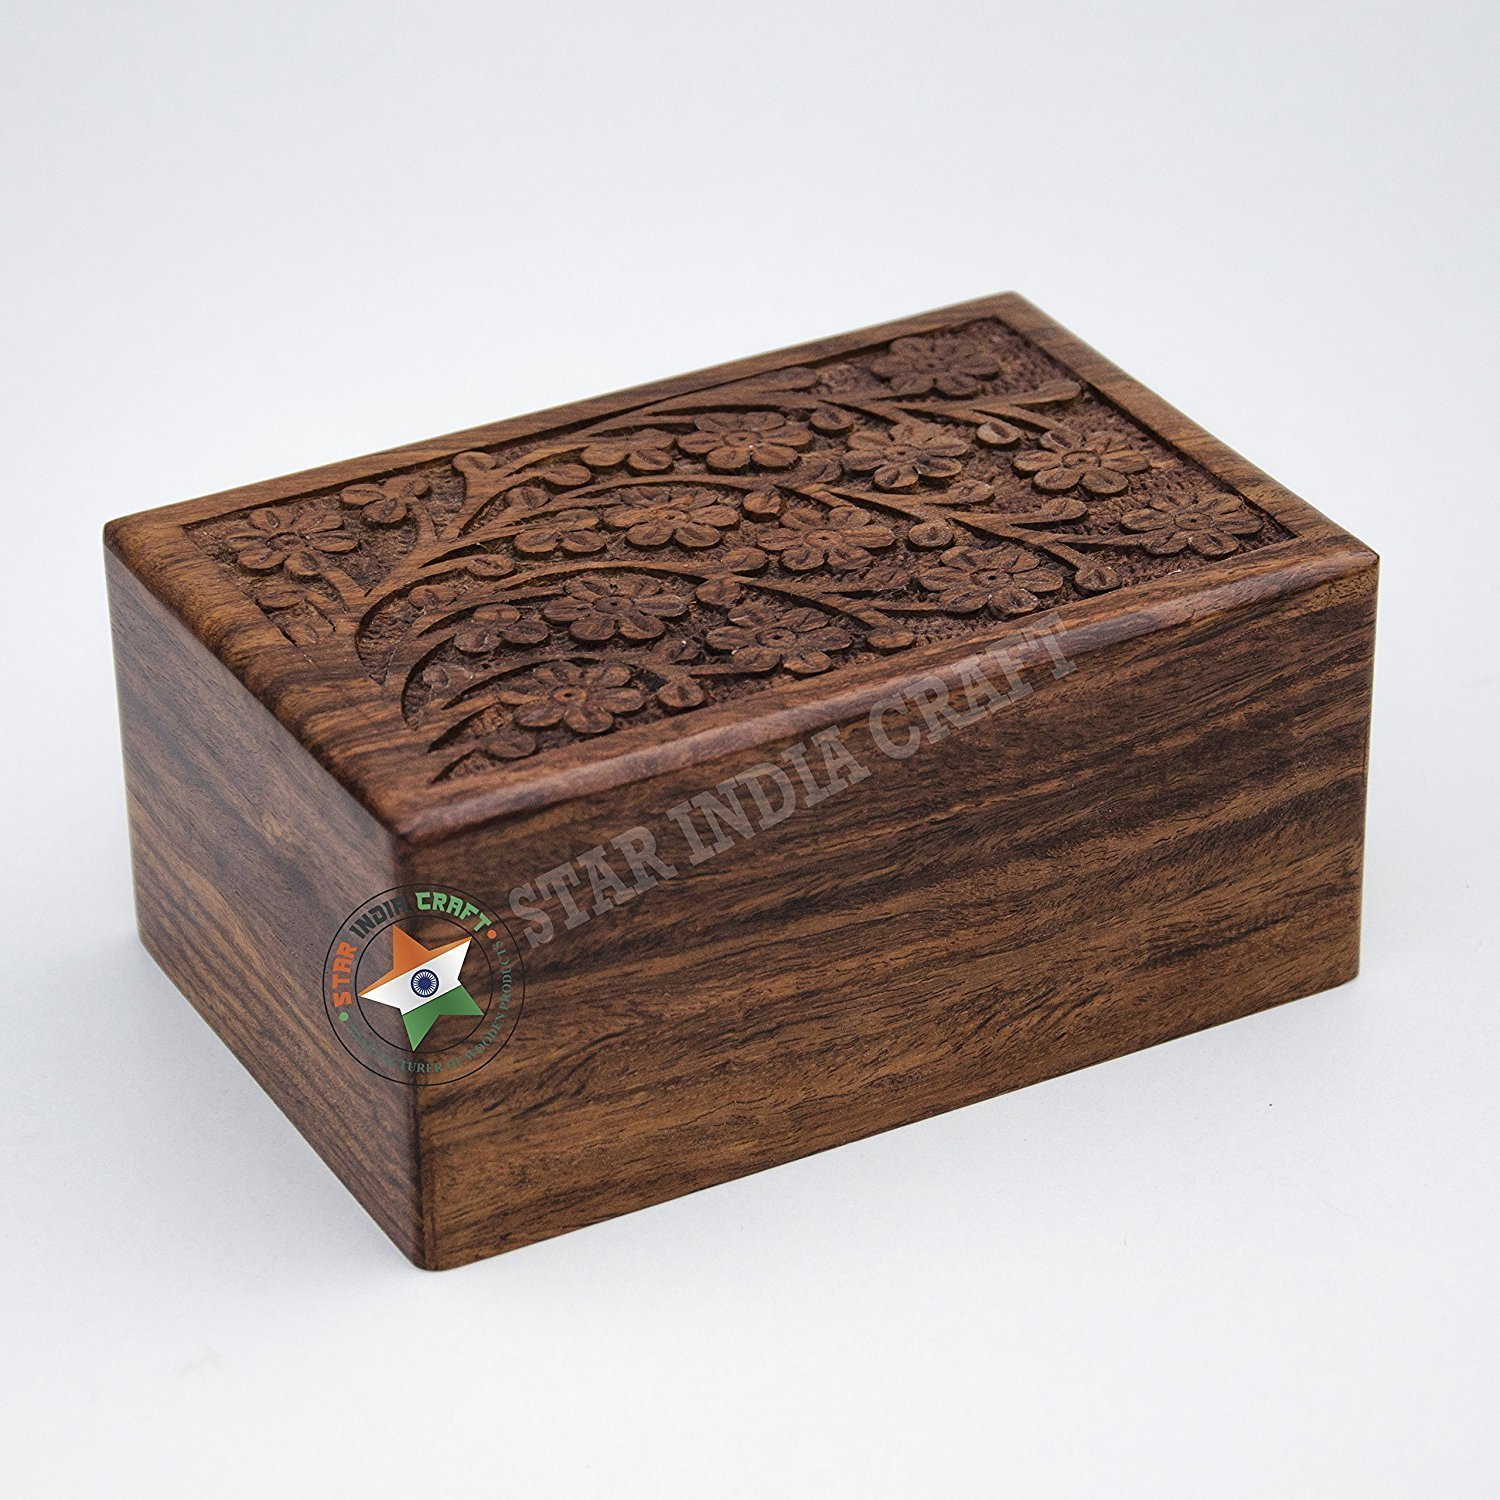 Beautifully Handmade Tree of Life Engraving Wooden Cremation Urns for Human Ashes Adult by STAR INDIA CRAFT - Rosewood Funeral Urns for Dogs/Cats, Wooden Box - Keepsake Urn Box (Extra Small - 5 x 3 x 2) UM-SWU-10 ES